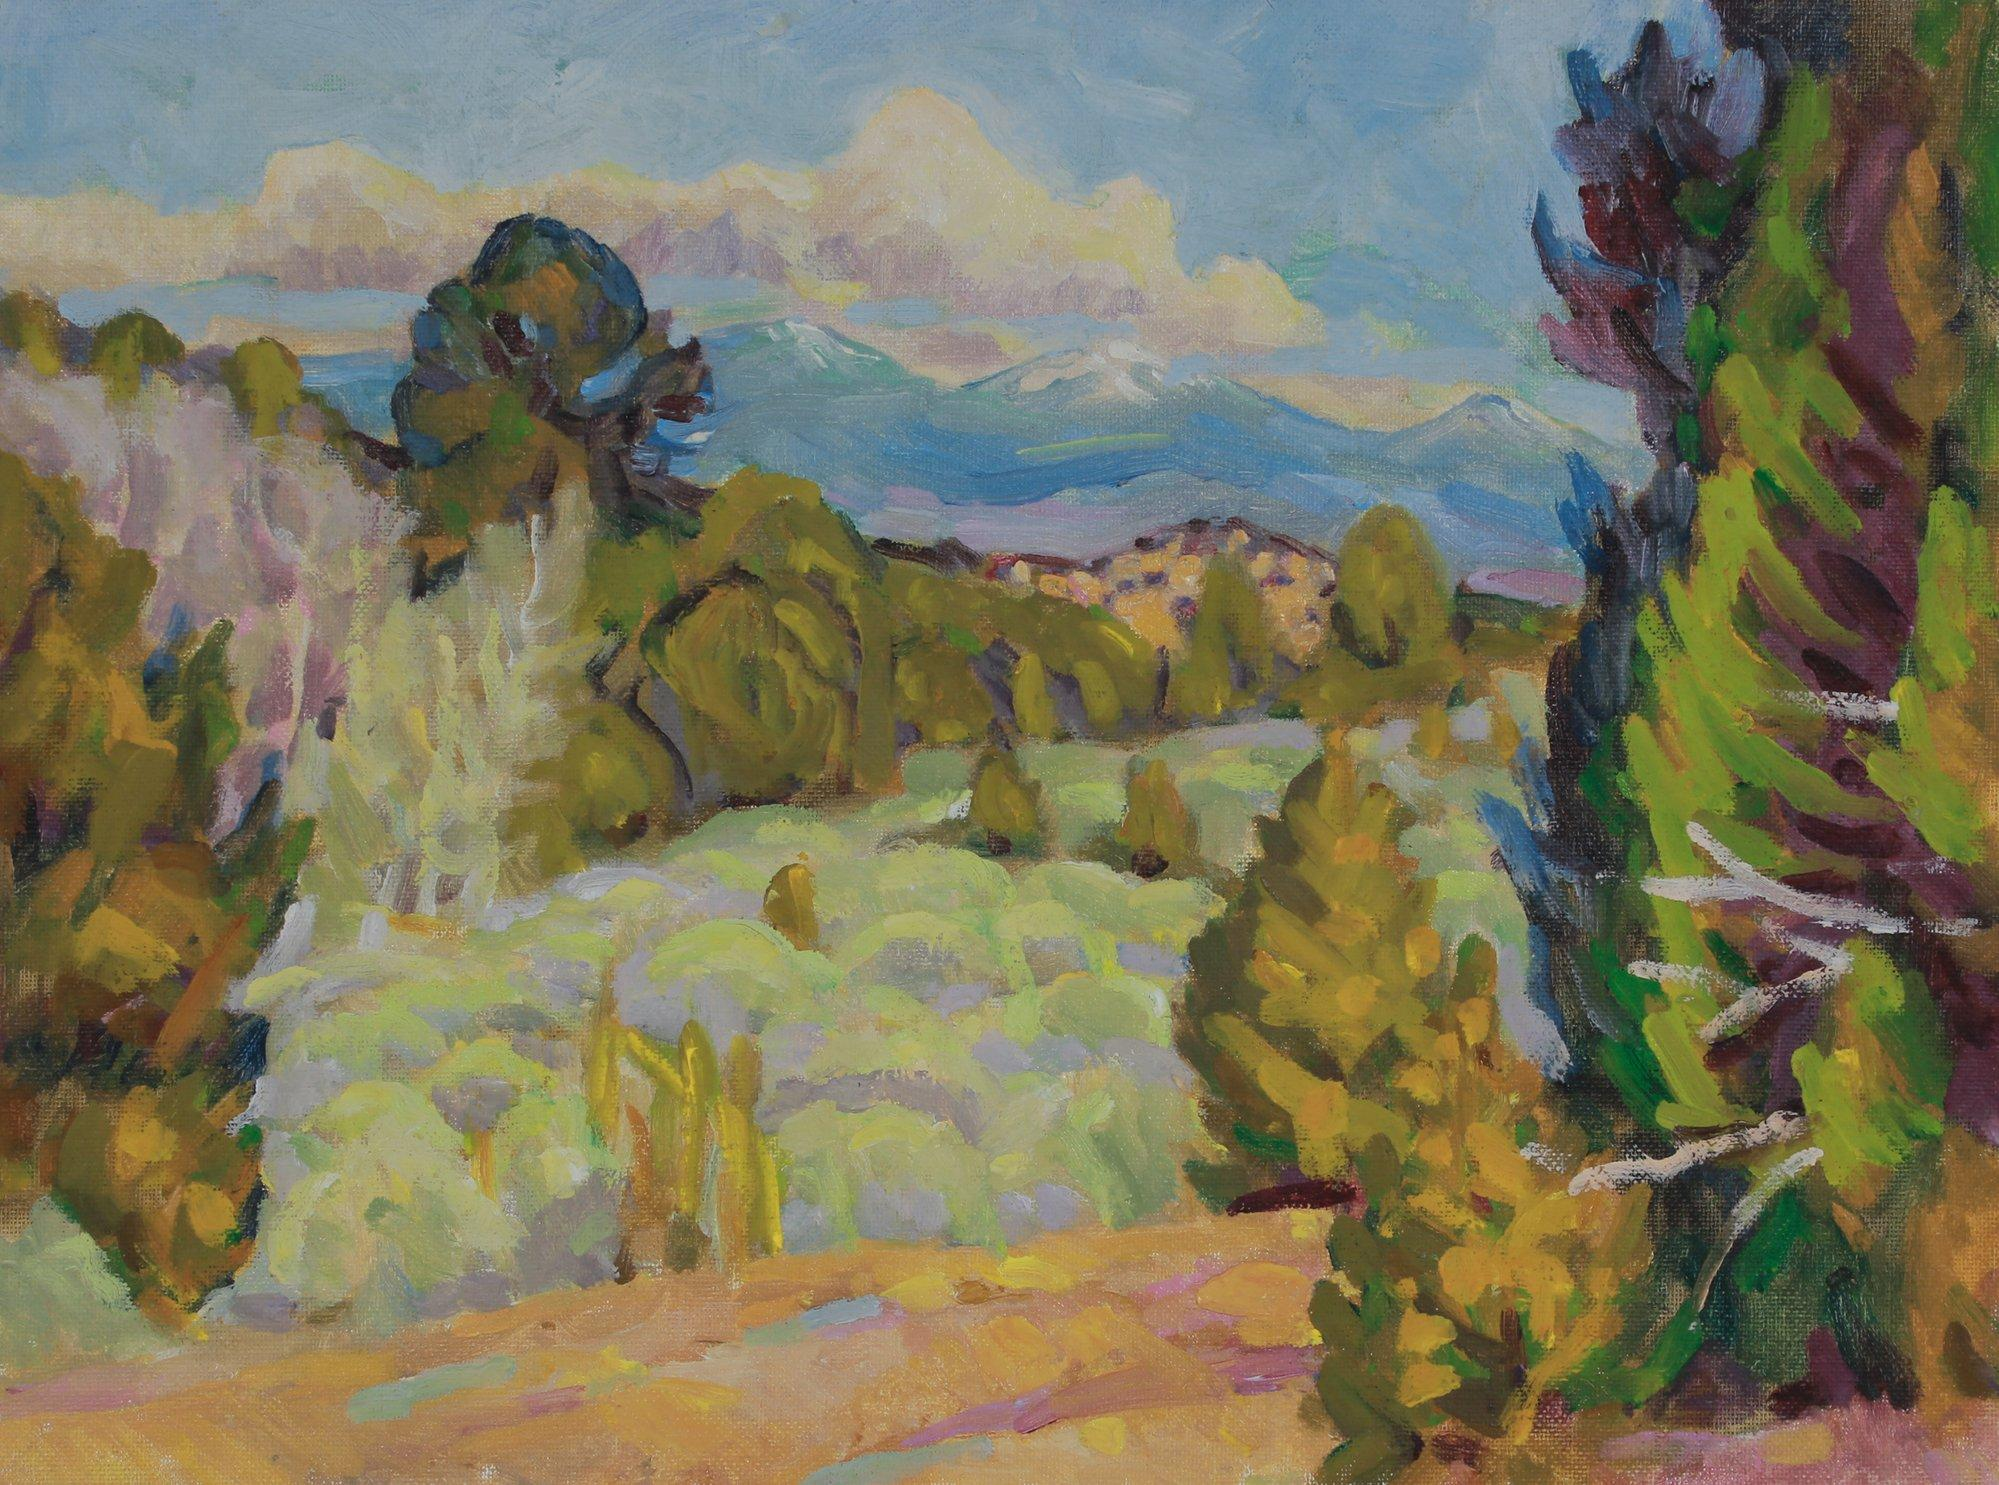 Tranquil Mountain Landscape 20th Century Oil Painting